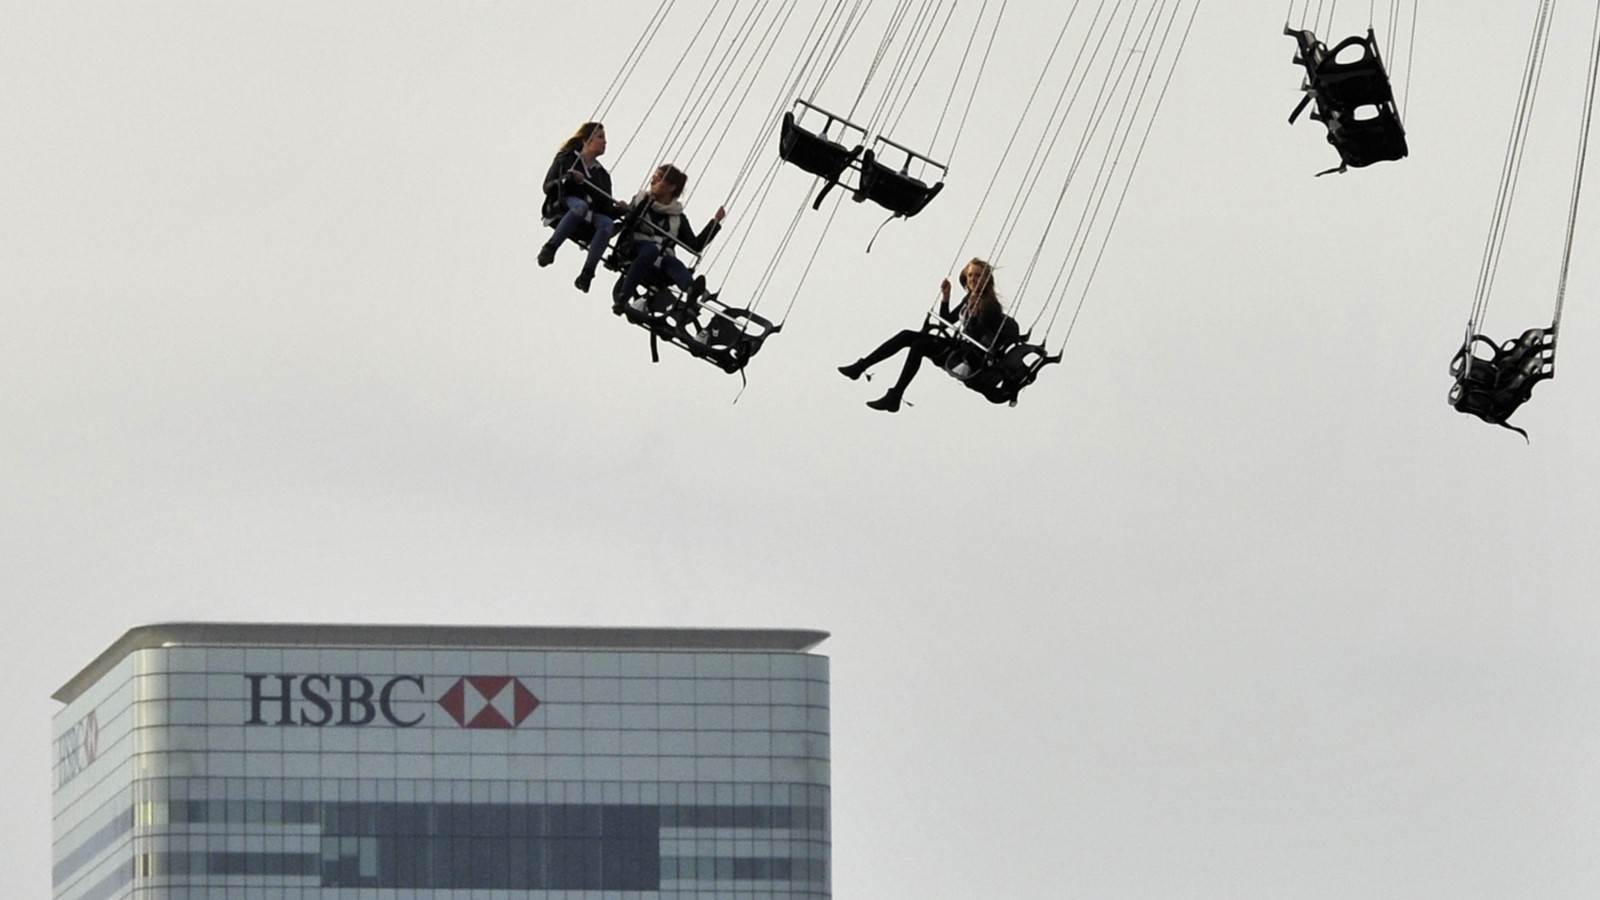 Financial offices of Canary Wharf are seen behind visitors to the O2 arena enjoying a fairground ride in east London November 23, 2011.   REUTERS/Toby Melville (BRITAIN - Tags: BUSINESS SOCIETY) - RTR2UDIM